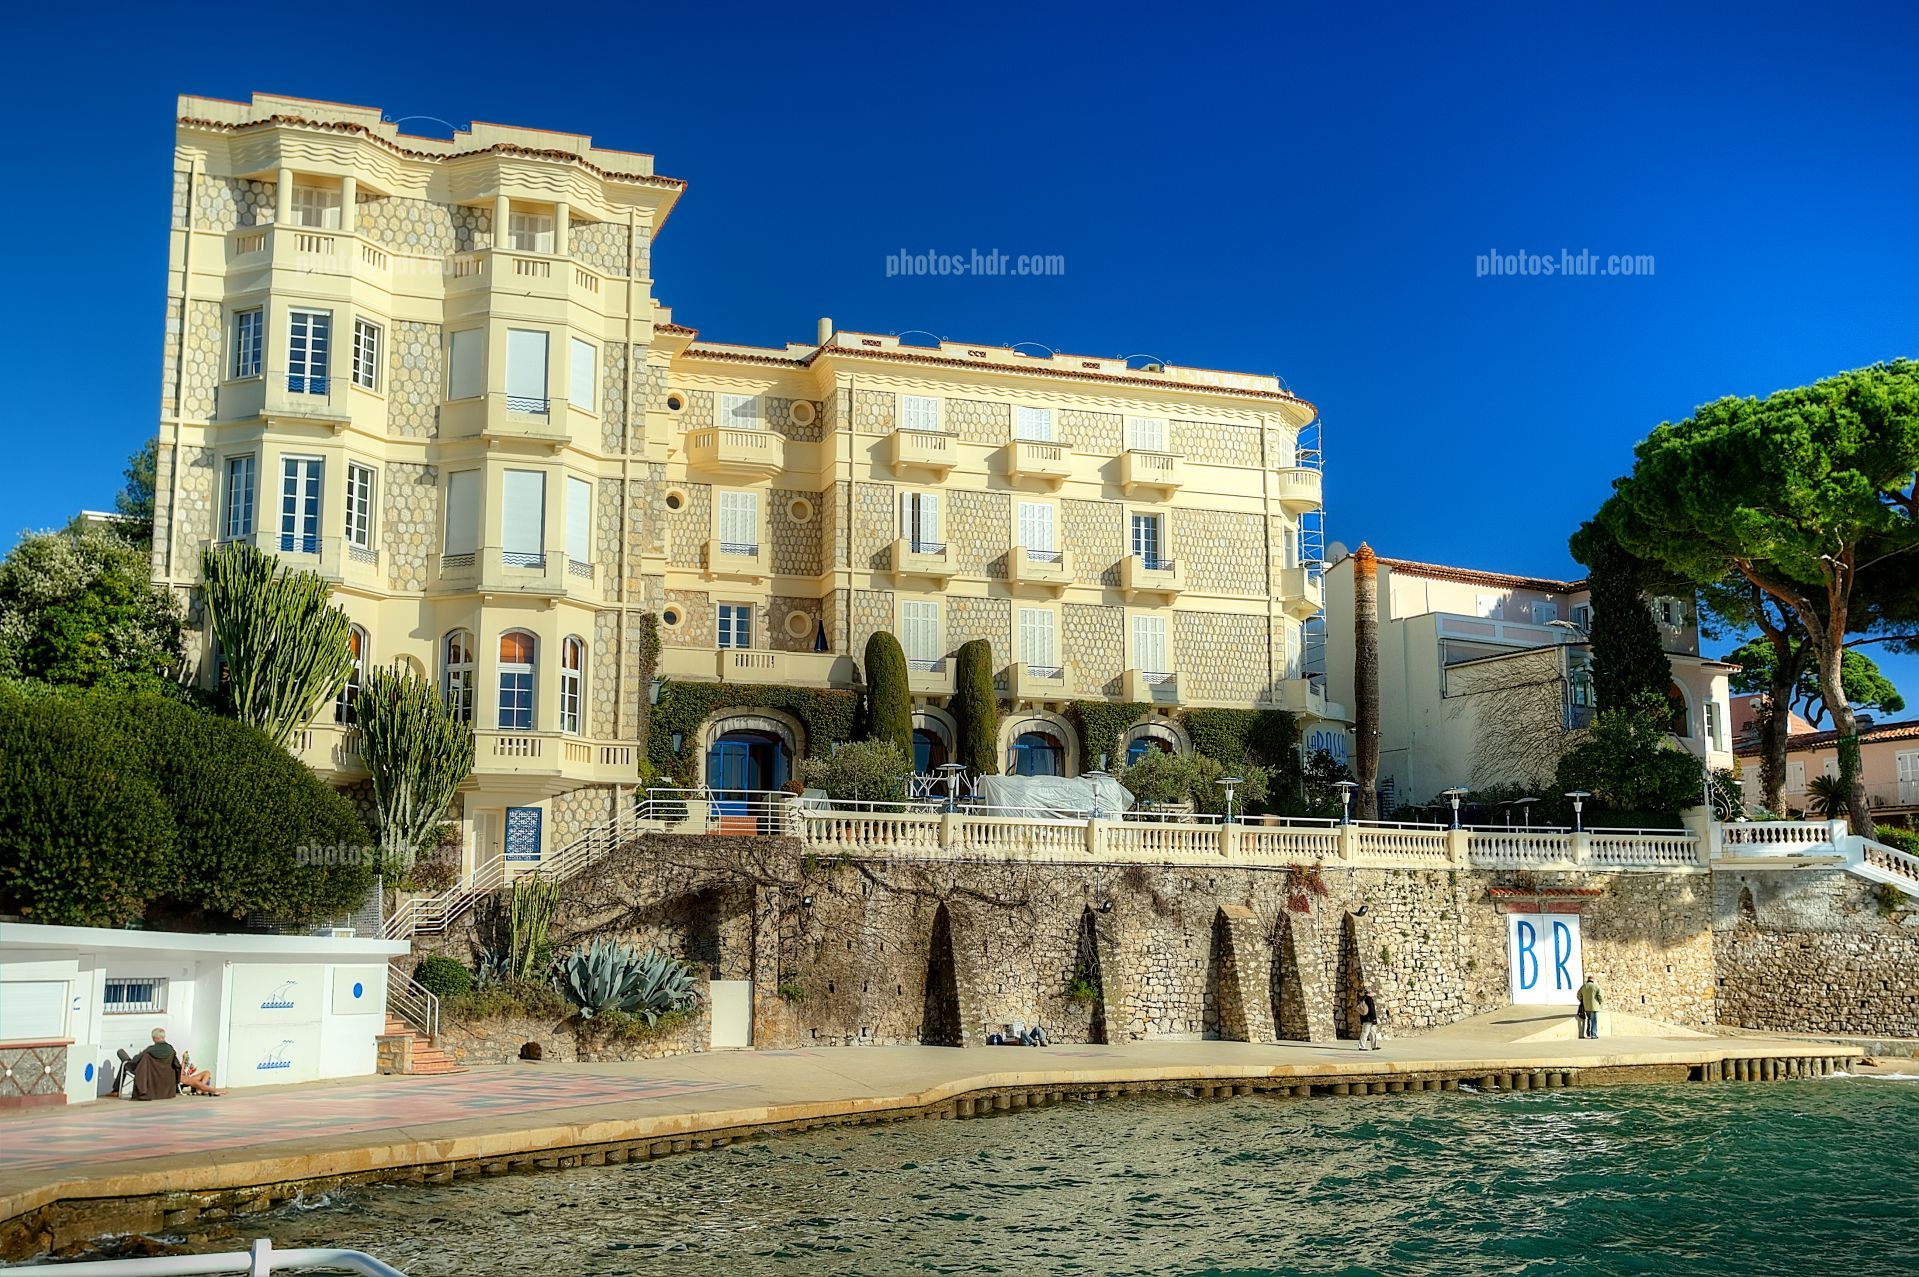 Photo hotel belle rive hors saison photos hdr h tels for Bell rive